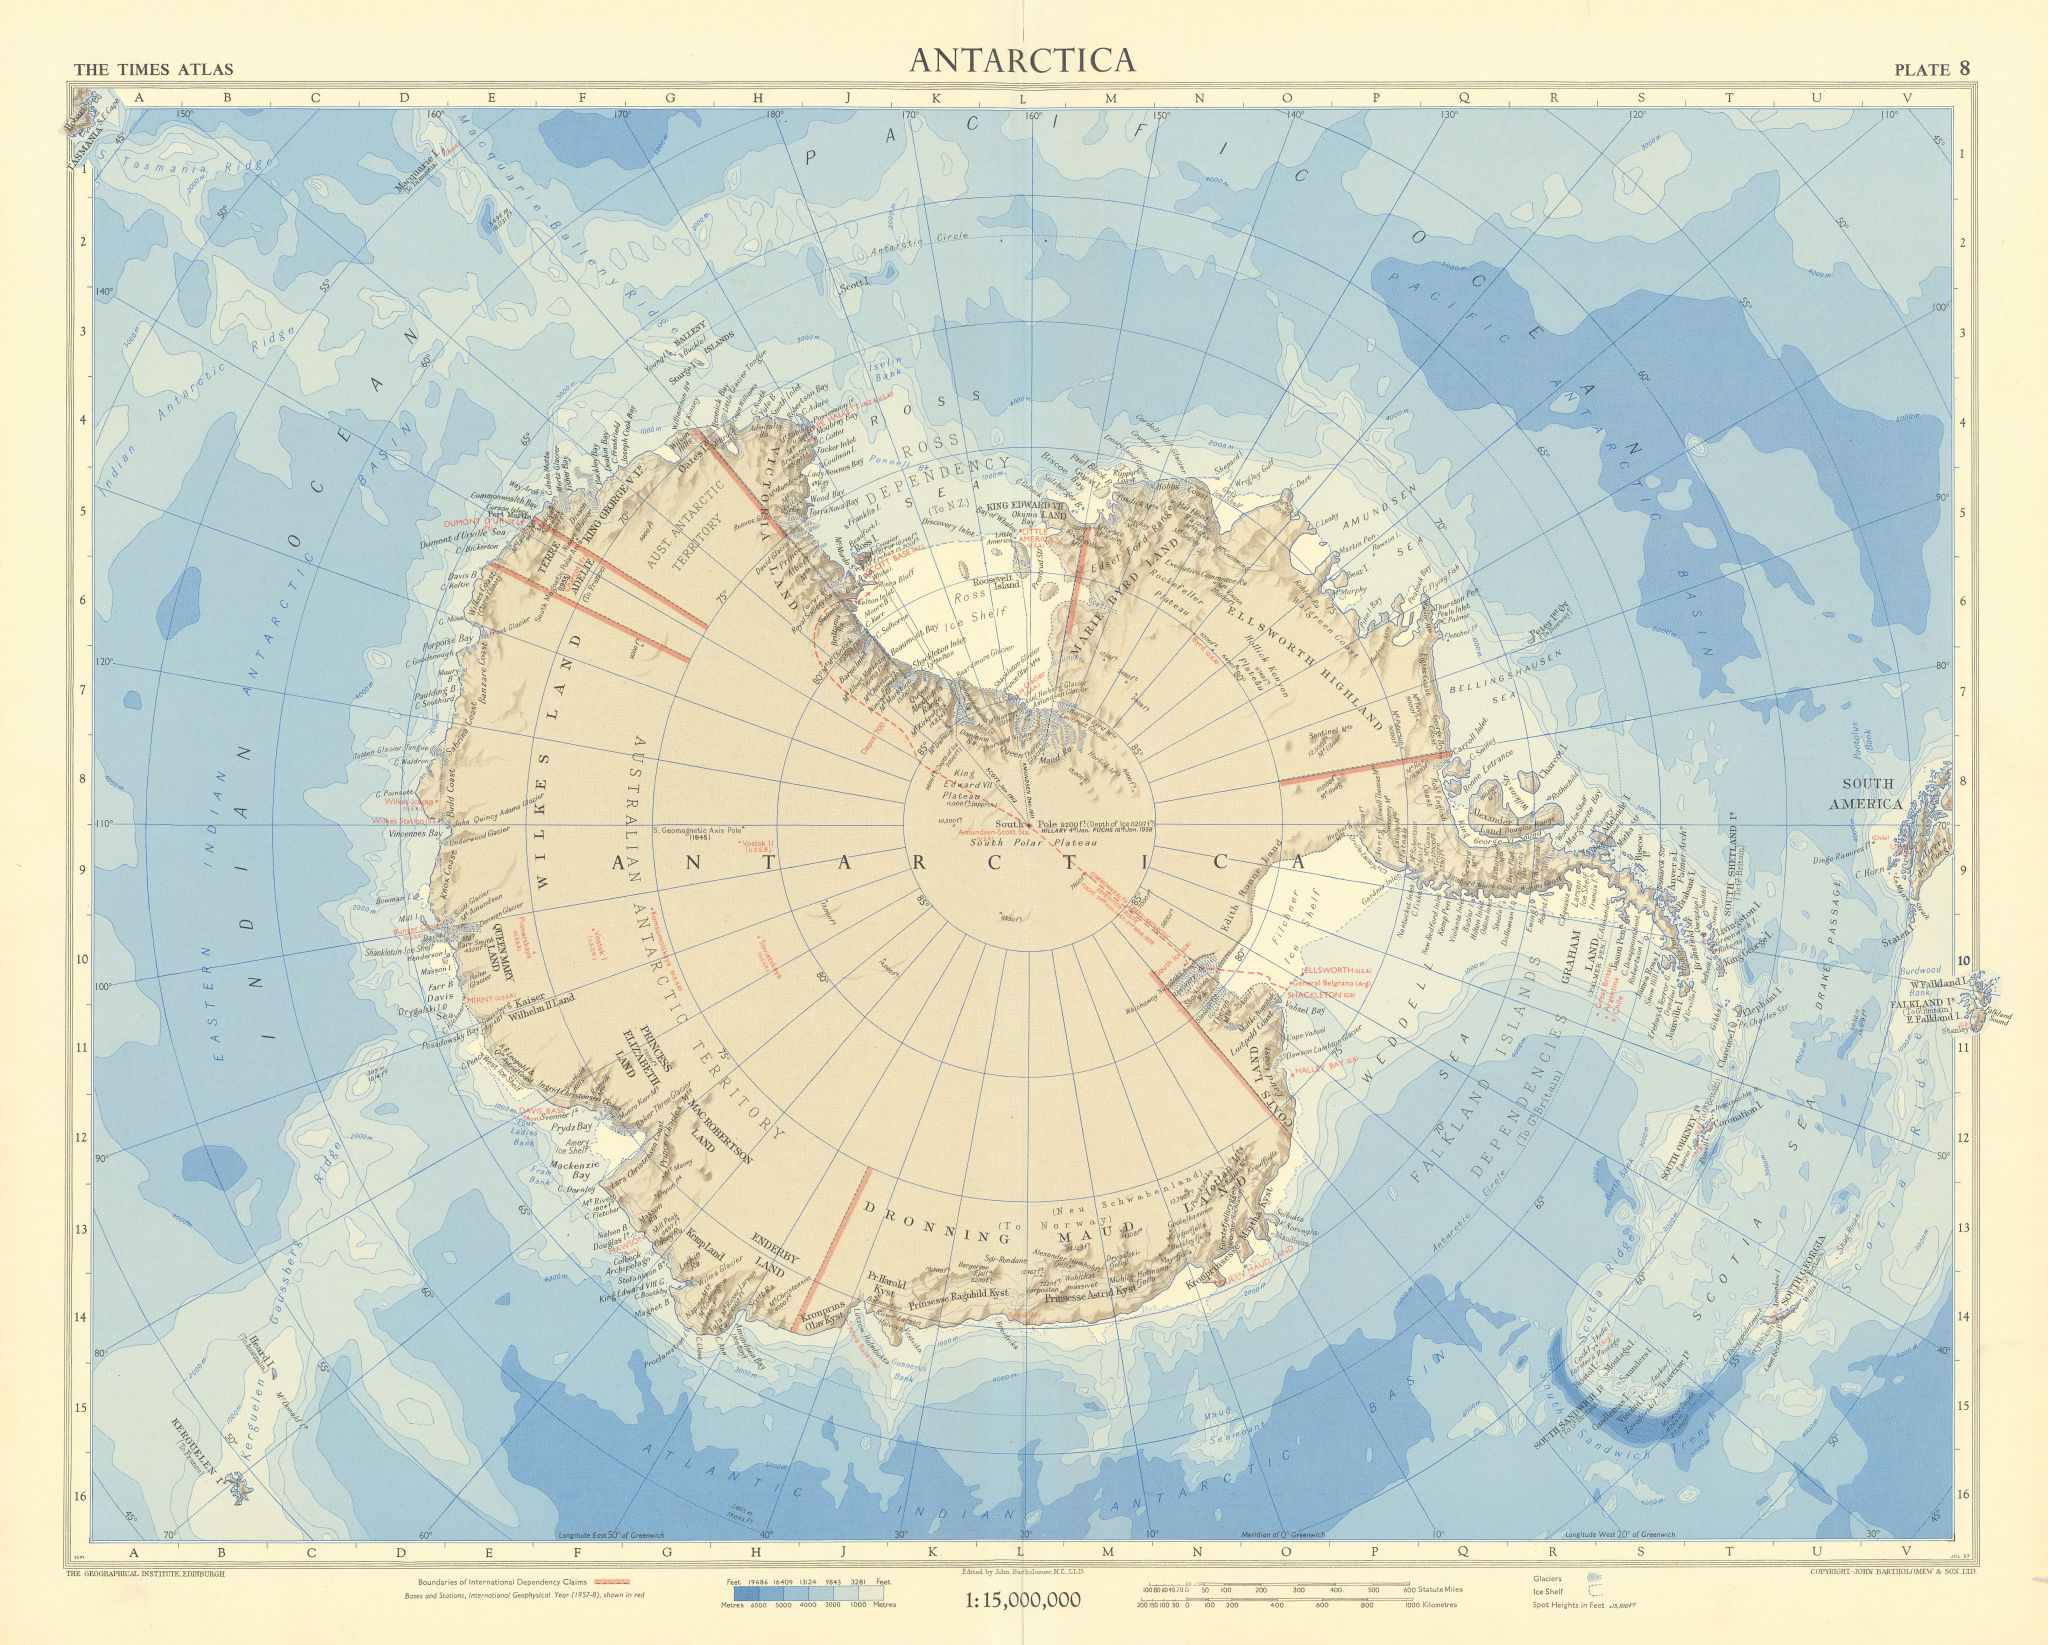 Antarctica. Research stations & CTAE 1957-58 route. South Pole. TIMES 1958 map